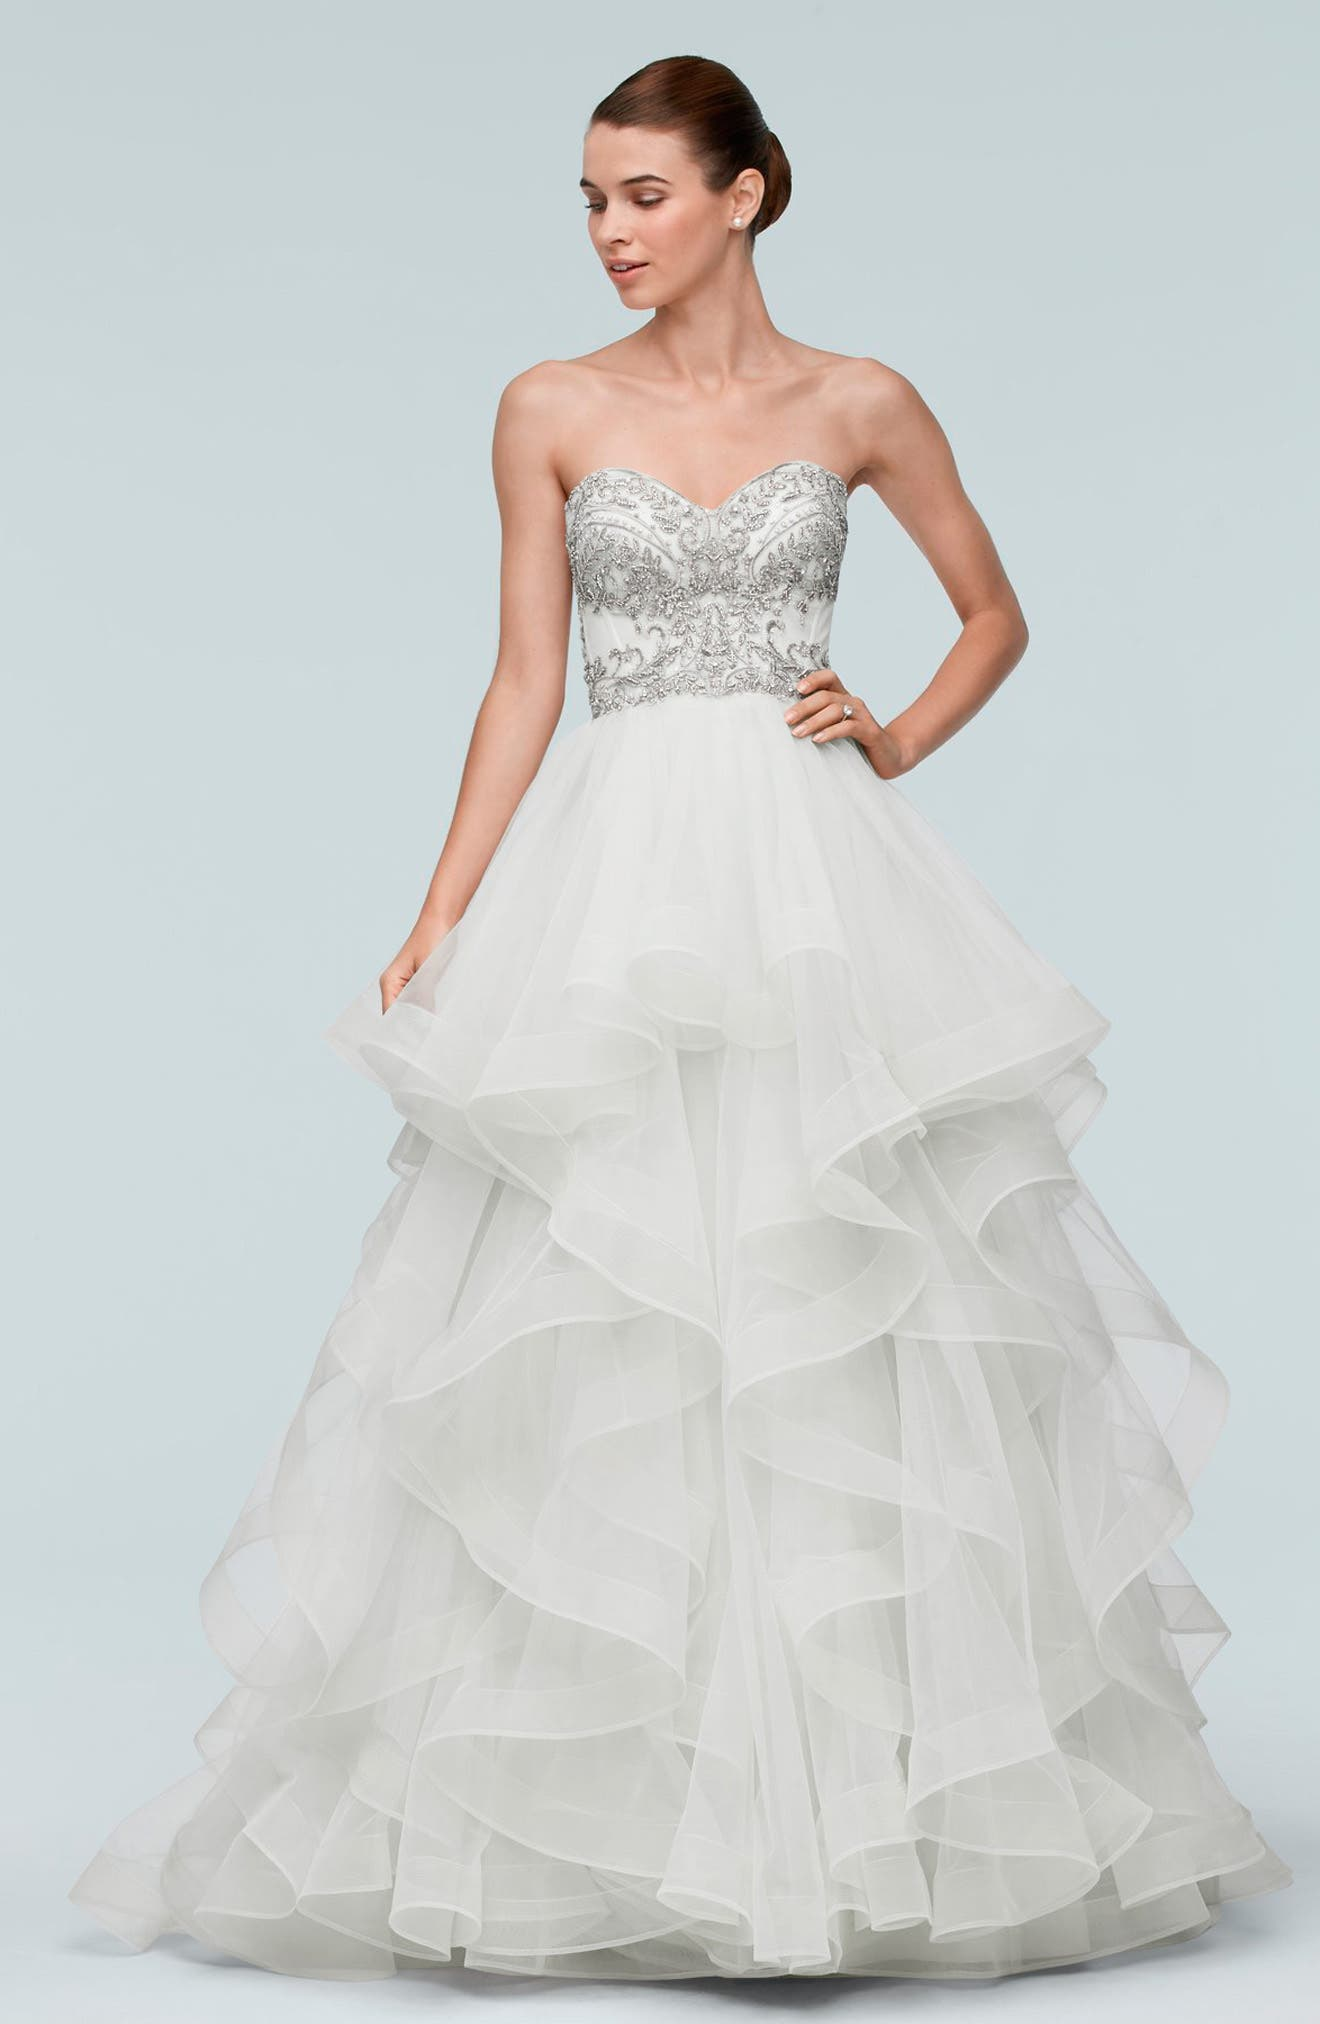 Meri Beaded Strapless Layered Tulle Gown,                             Alternate thumbnail 2, color,                             907